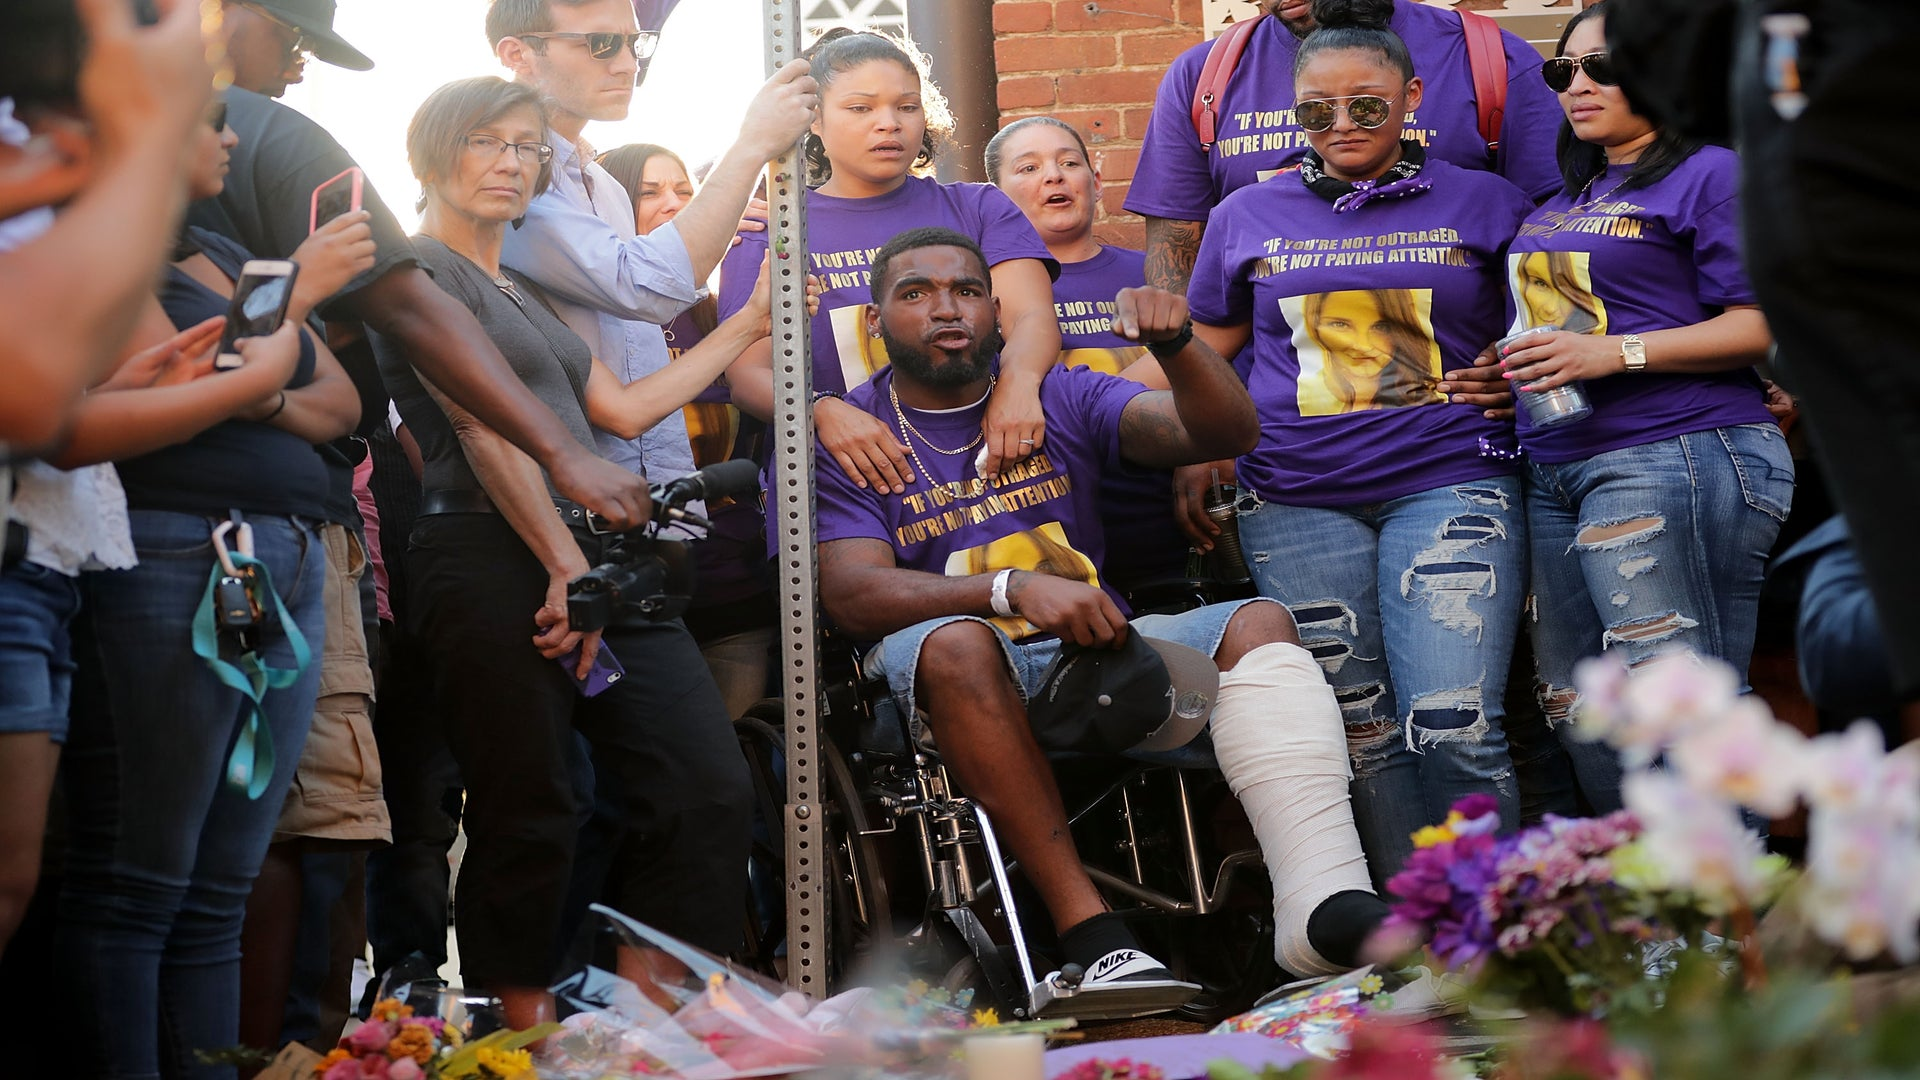 The Man Seen In Viral Charlottesville Car Attack Photo Was Saving His Fiancée's Life